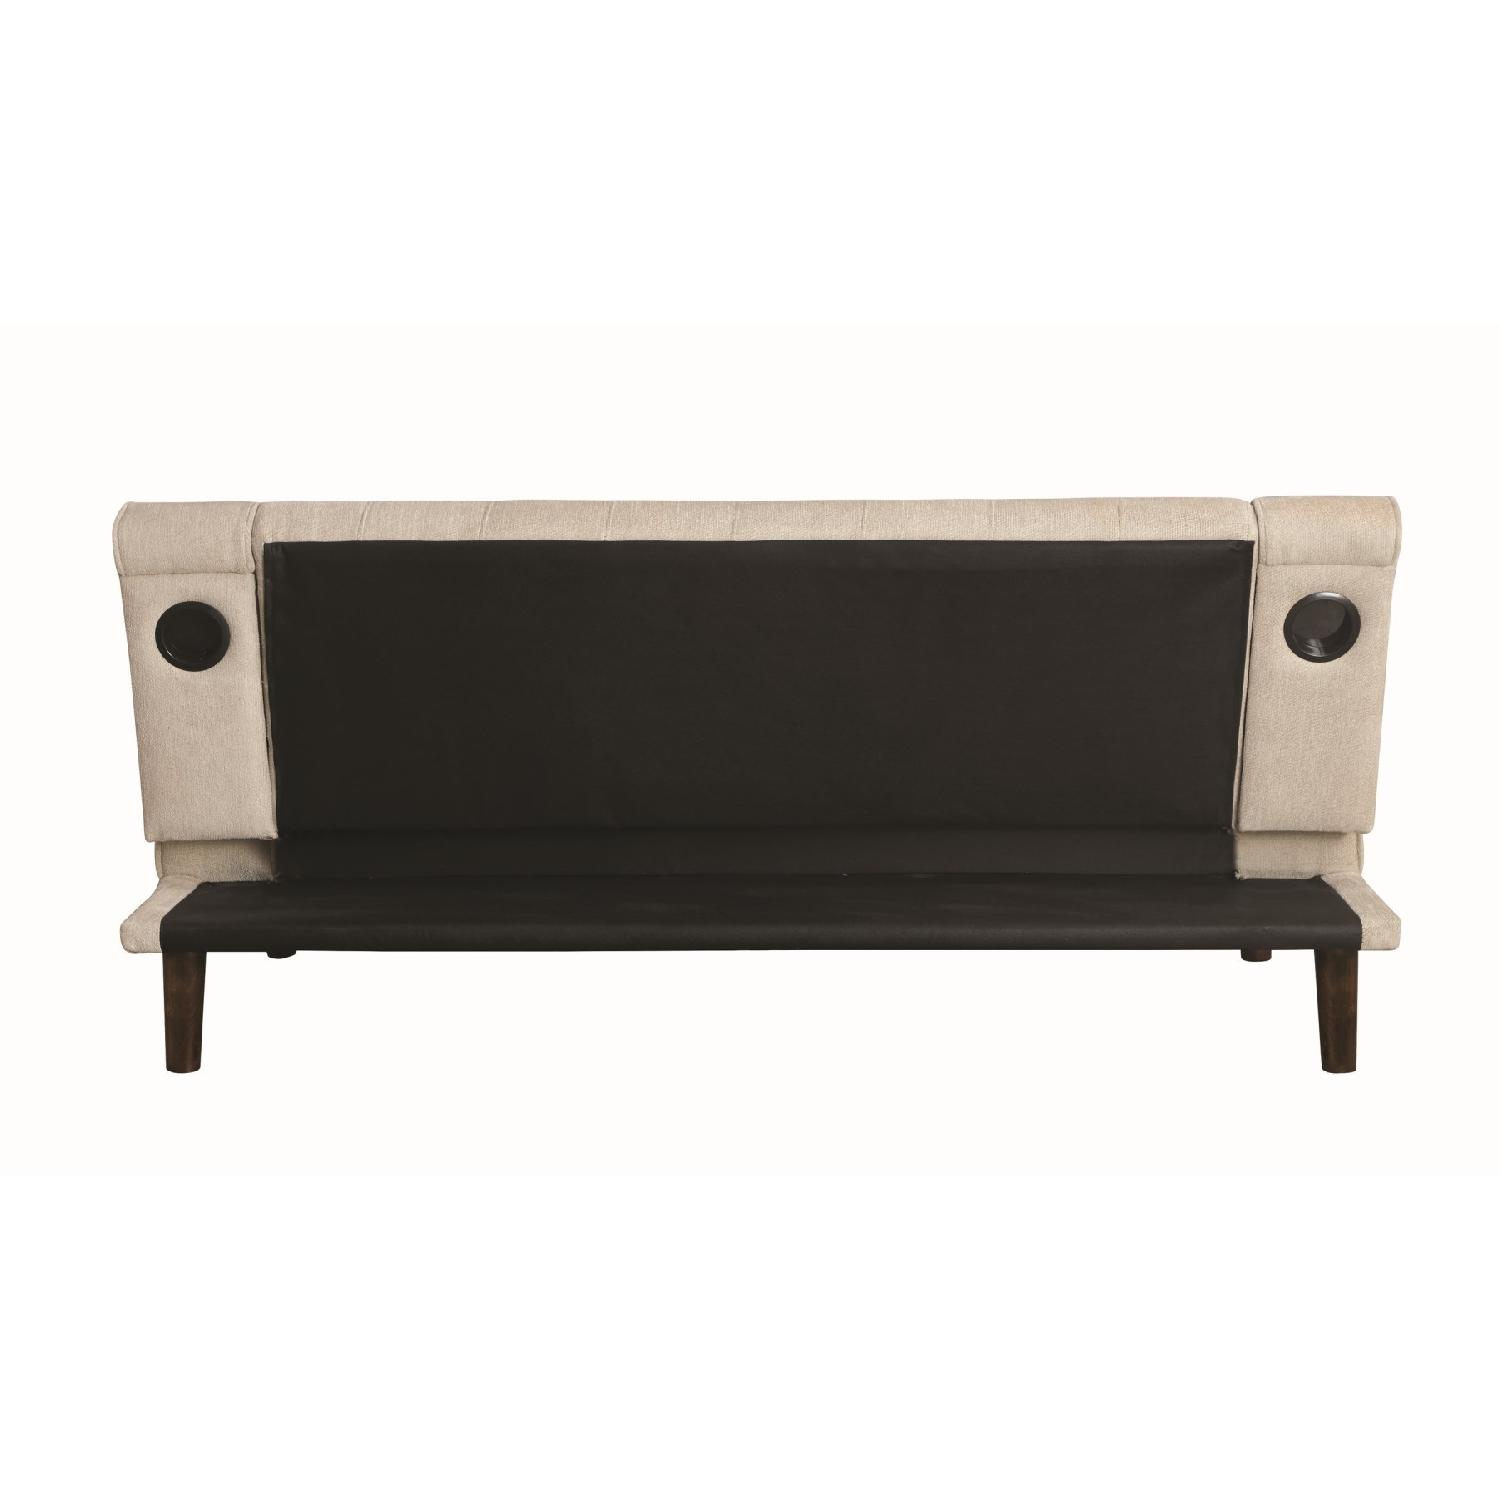 Sofabed w/ Cupholder Armrests in Beige Chenille Fabric - image-4